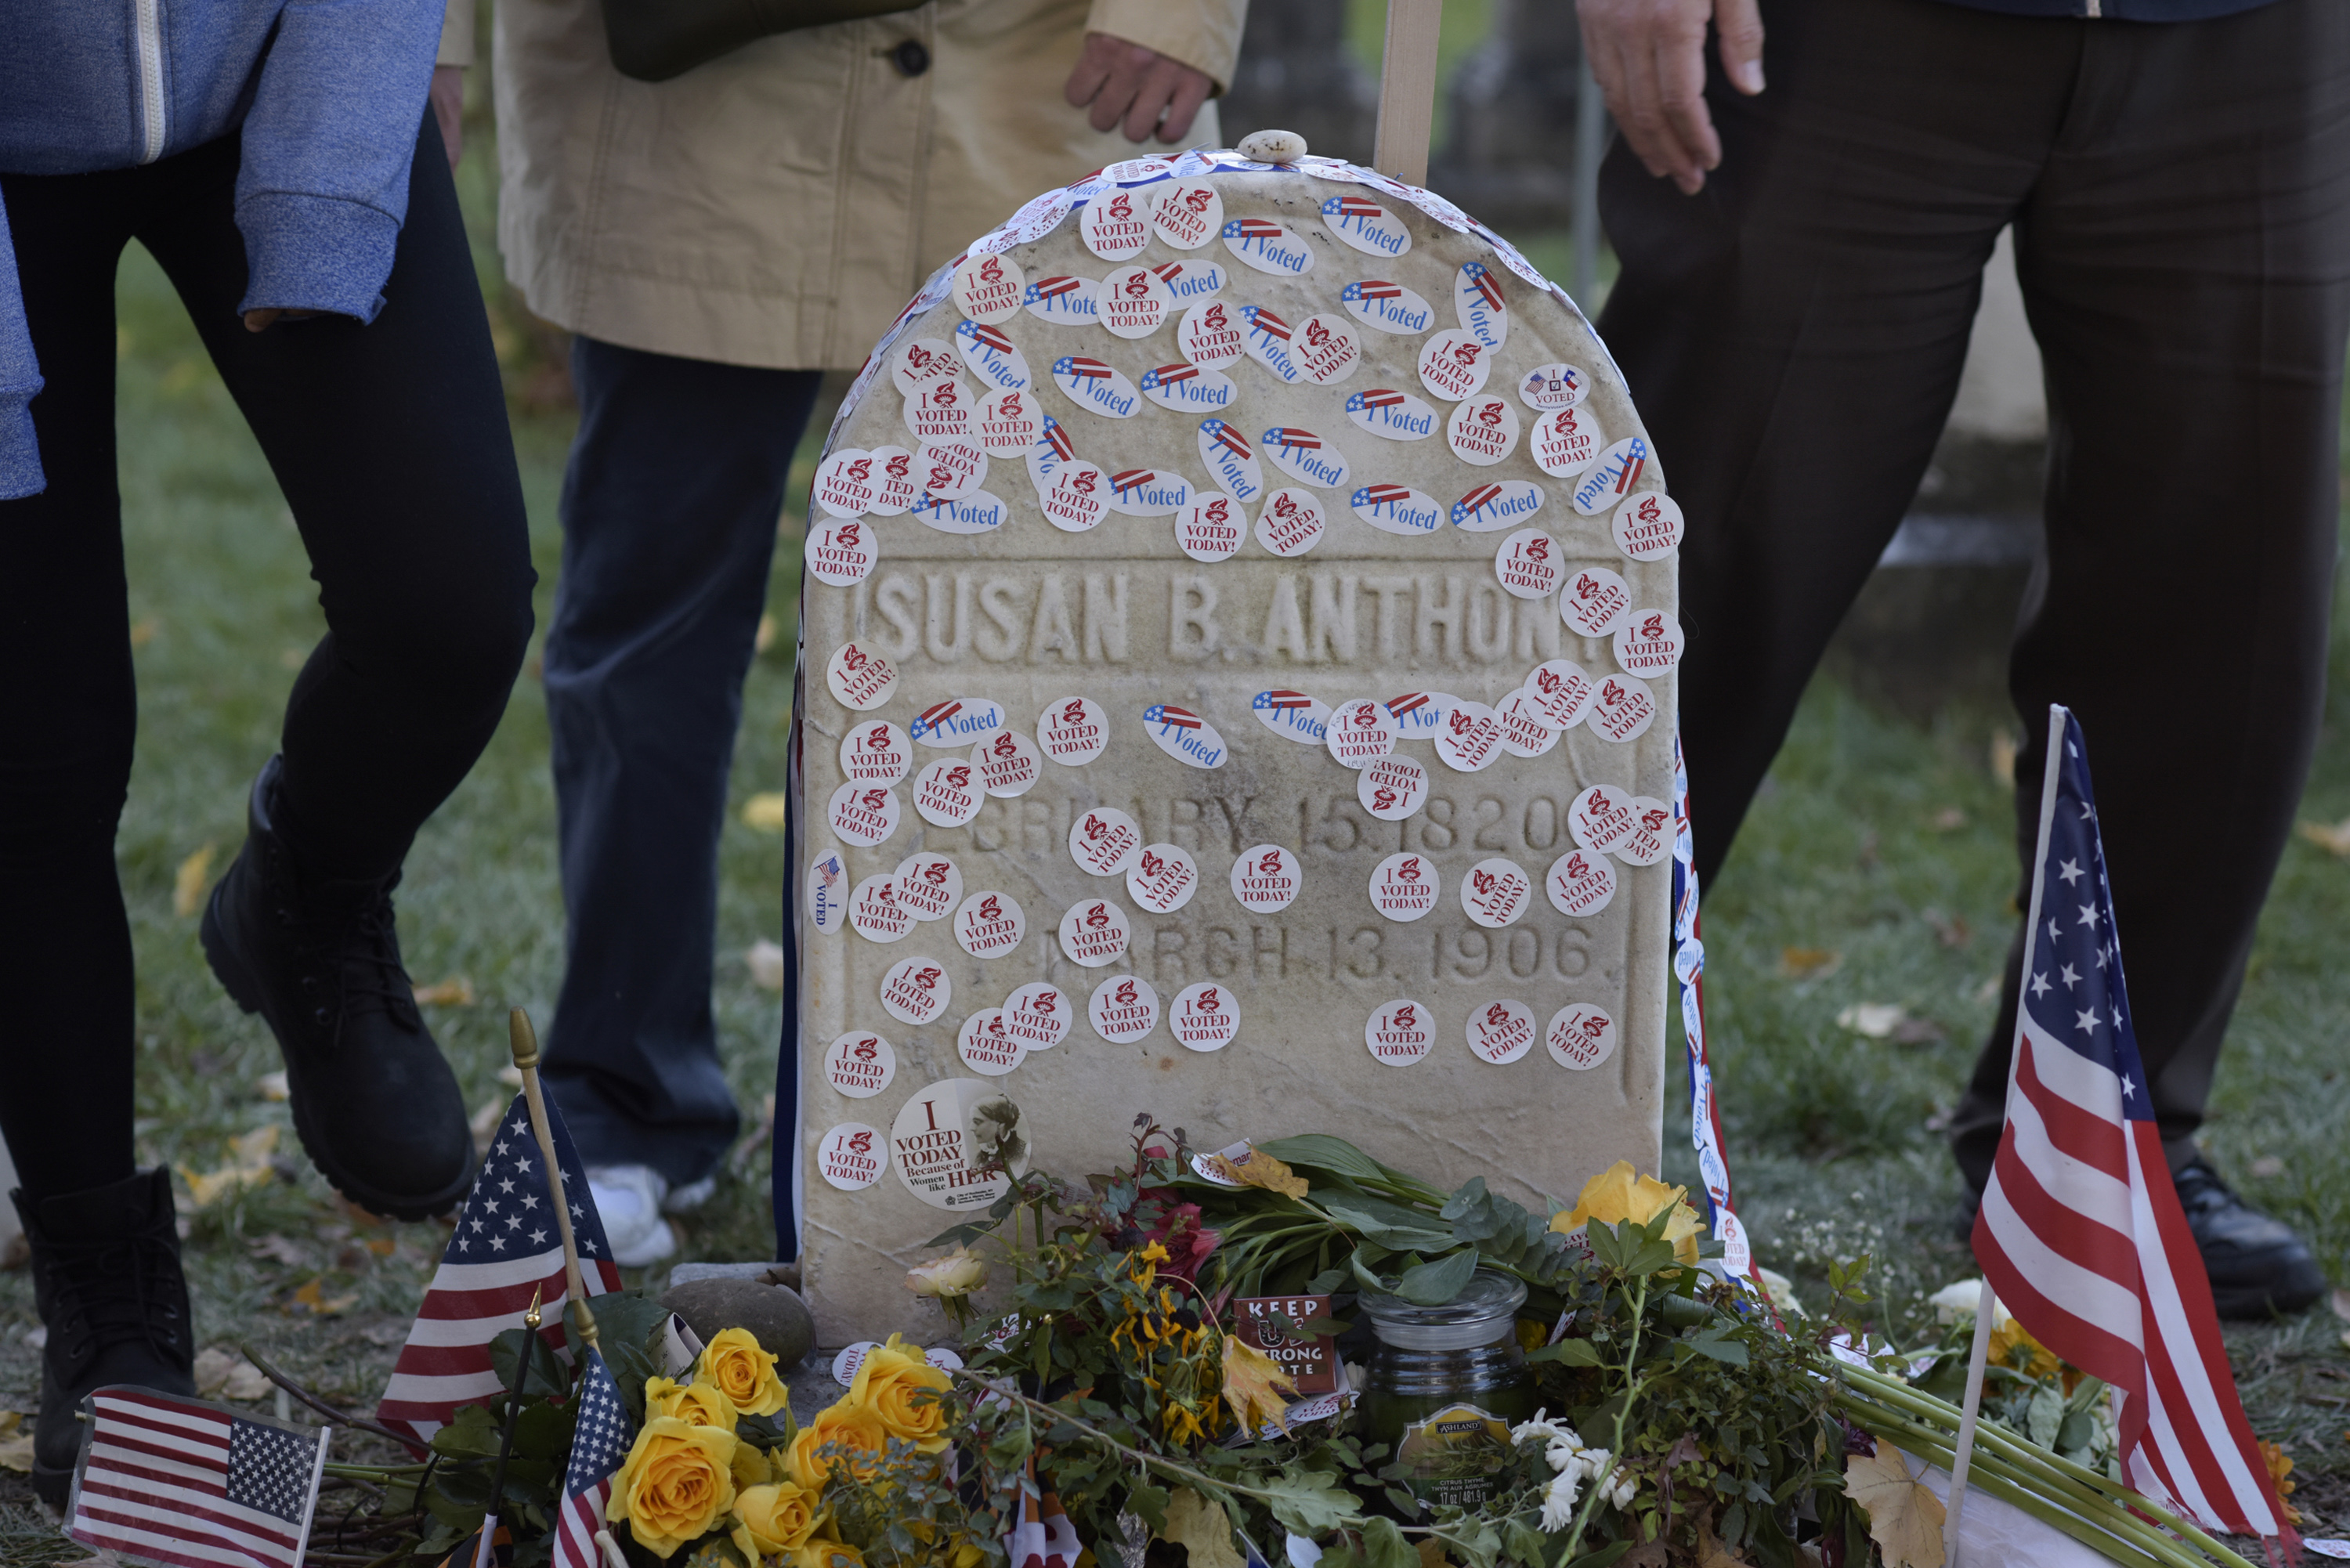 People visit the grave of women's suffrage leader Susan B. Anthony at Mount Hope Cemetery in Rochester, New York.